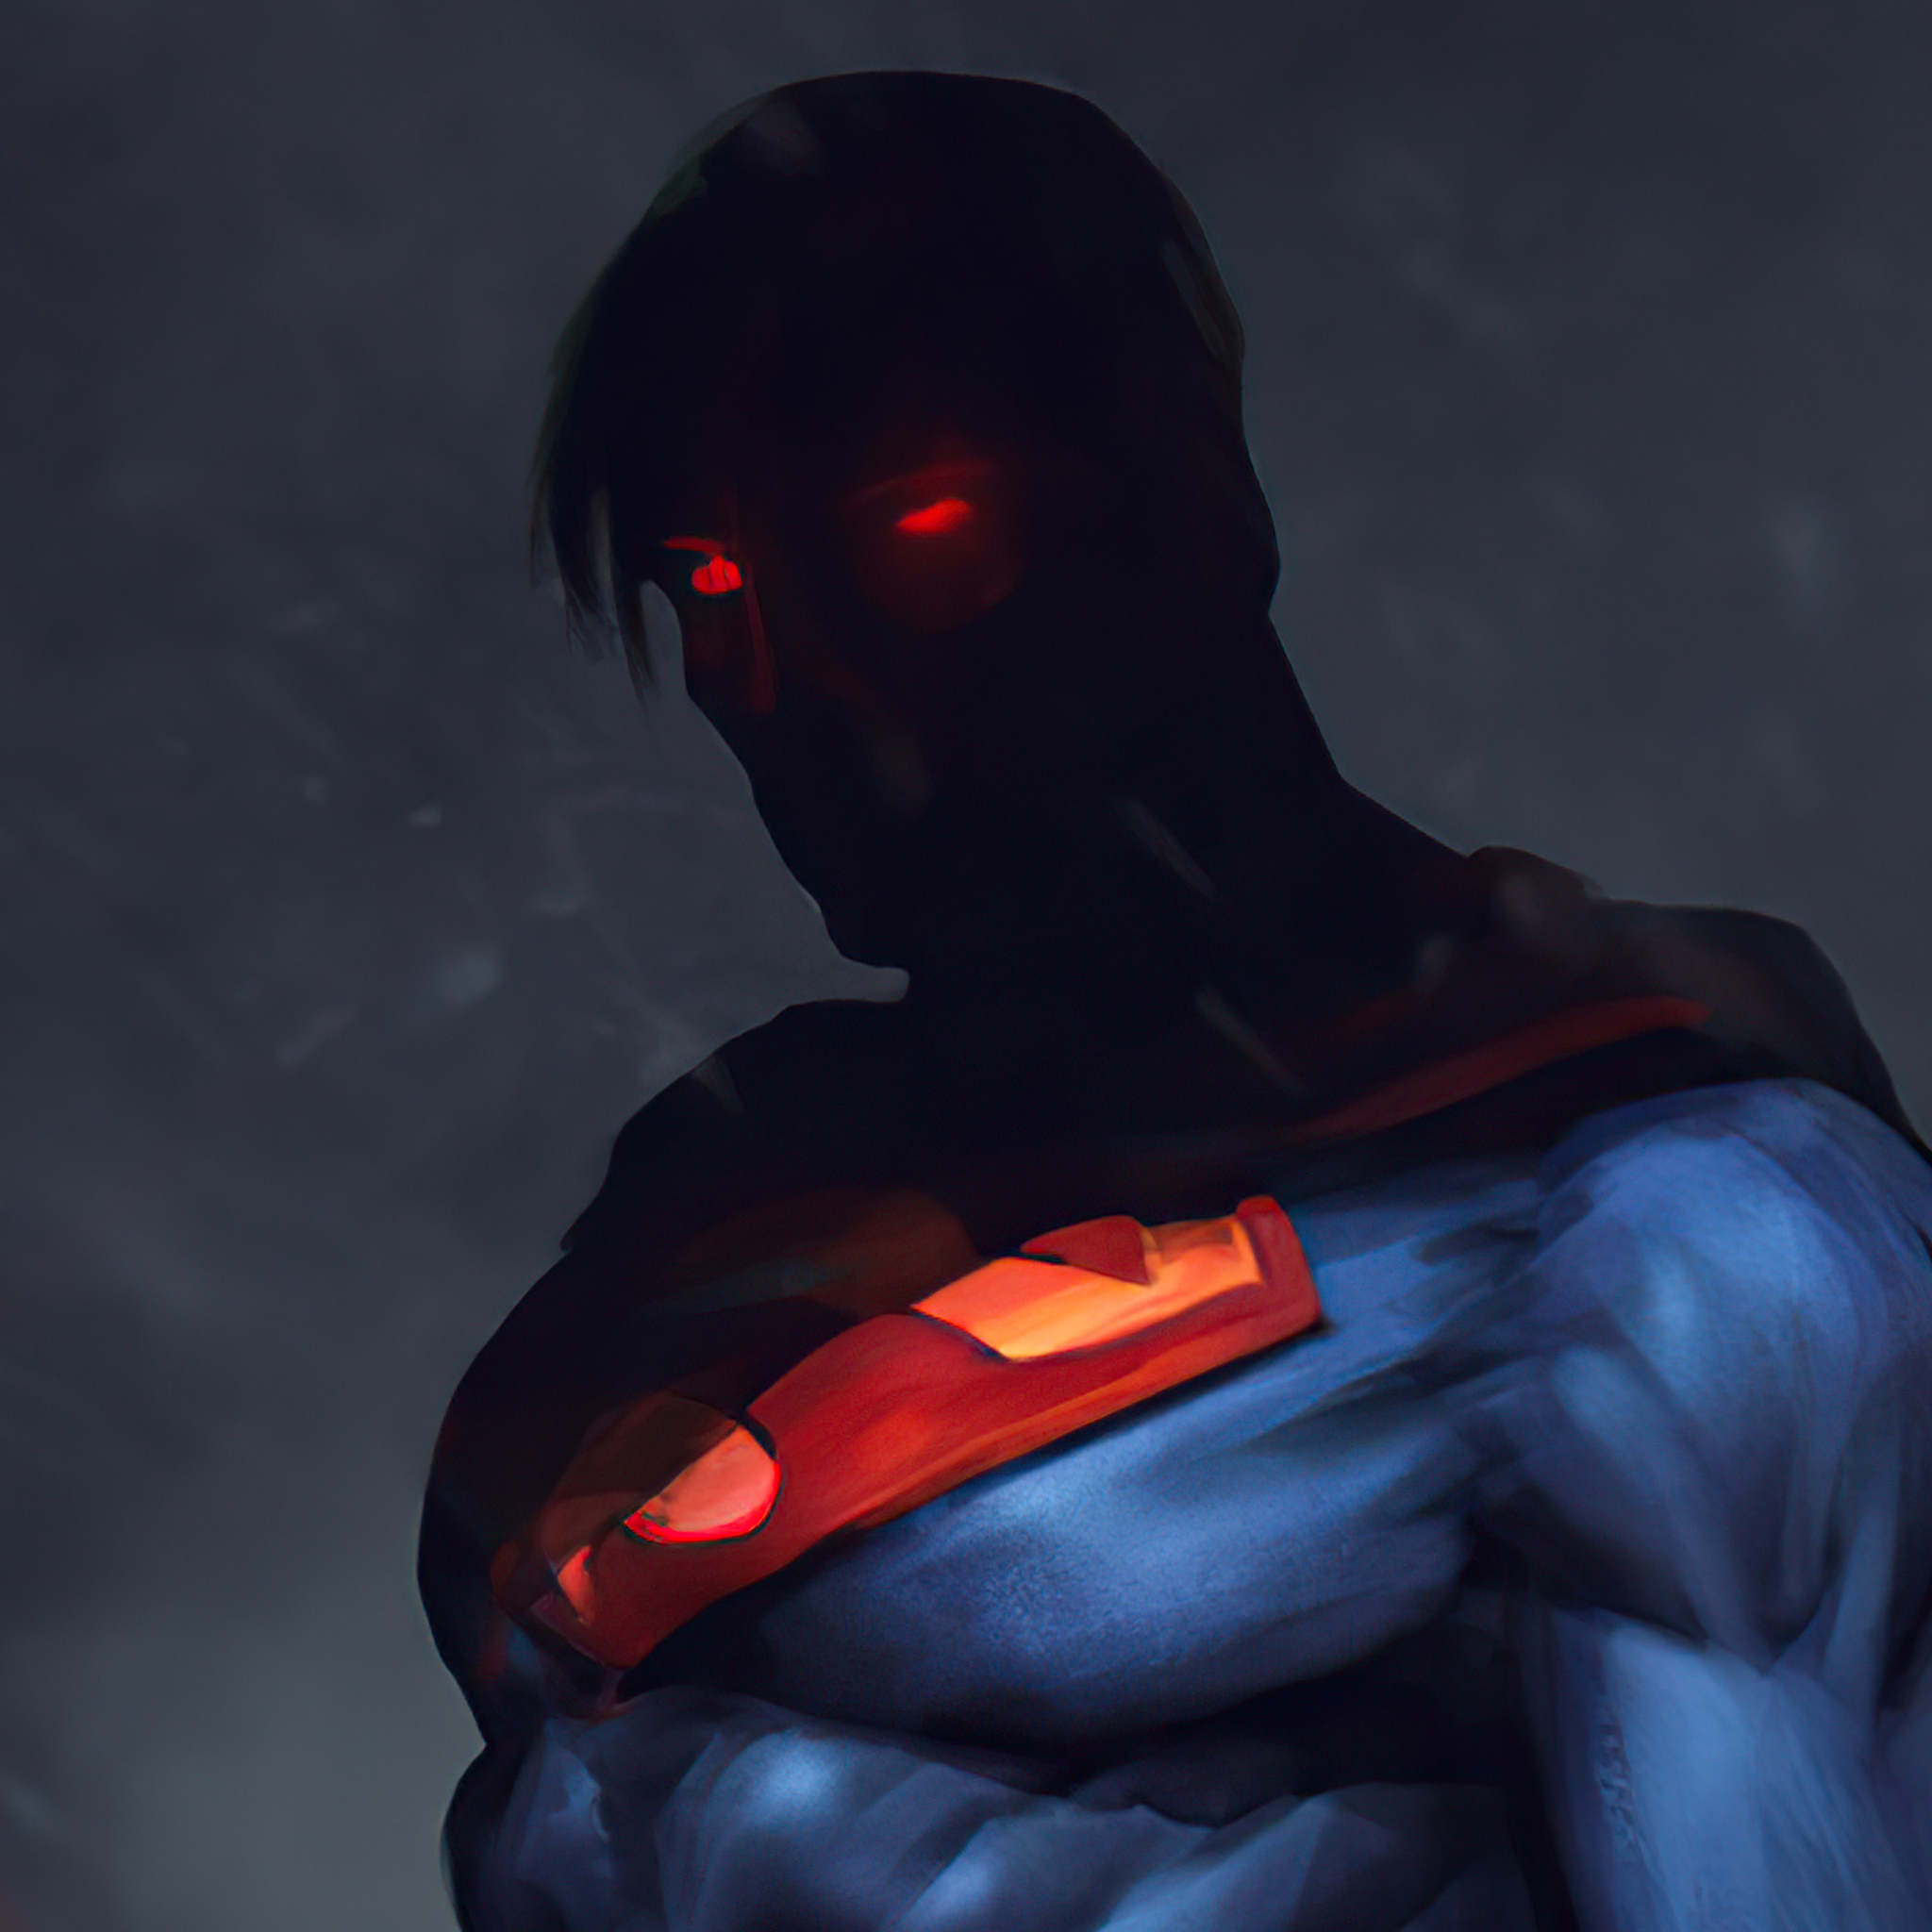 superman-redesign-4k-0x.jpg